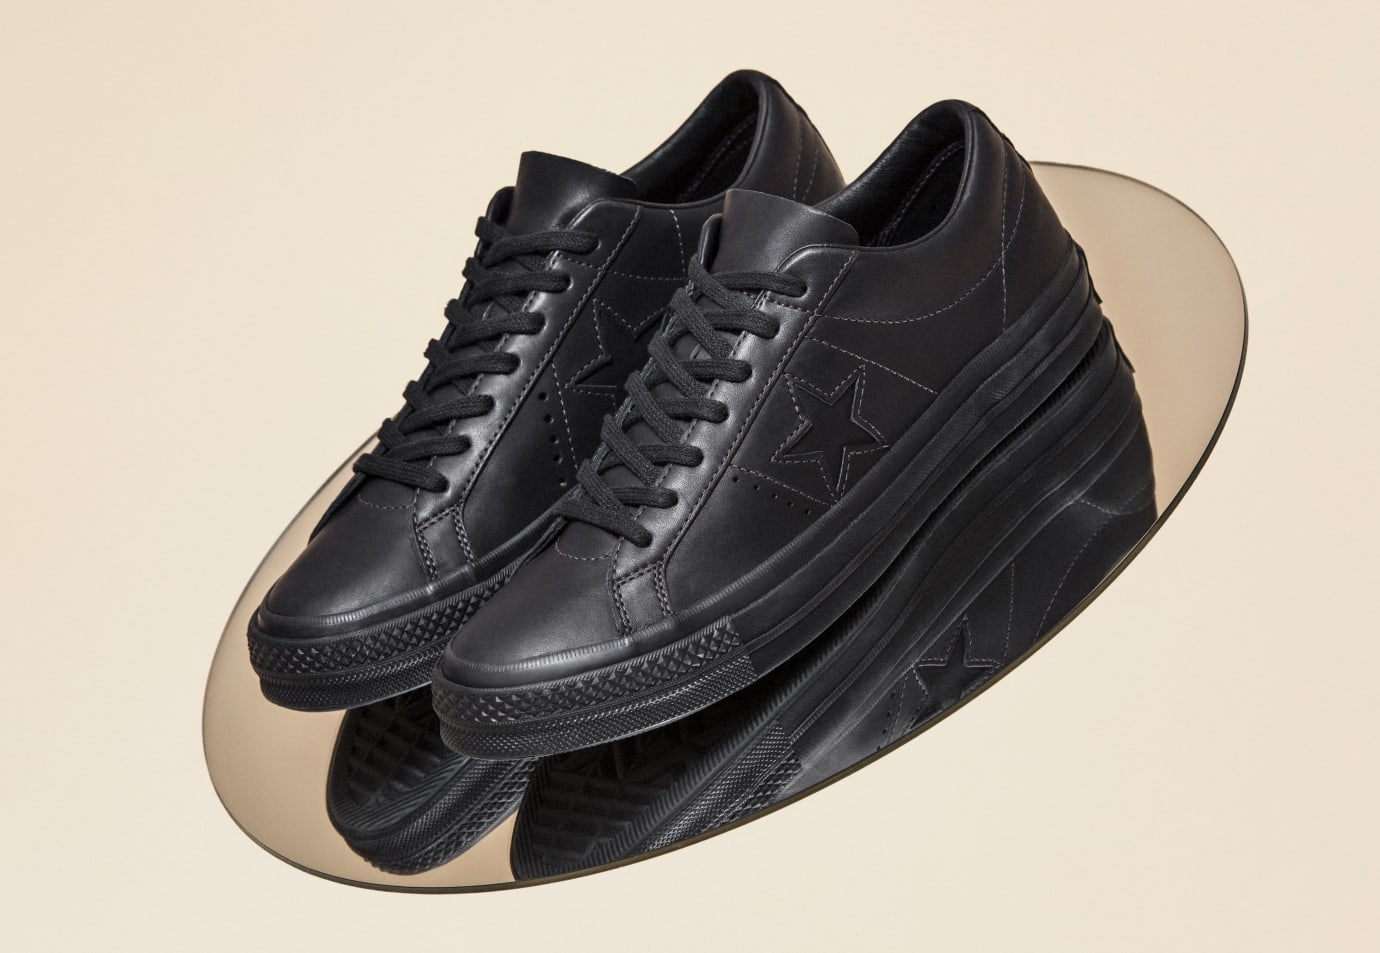 Converse x Engineered Garments One Star Collection (Black)